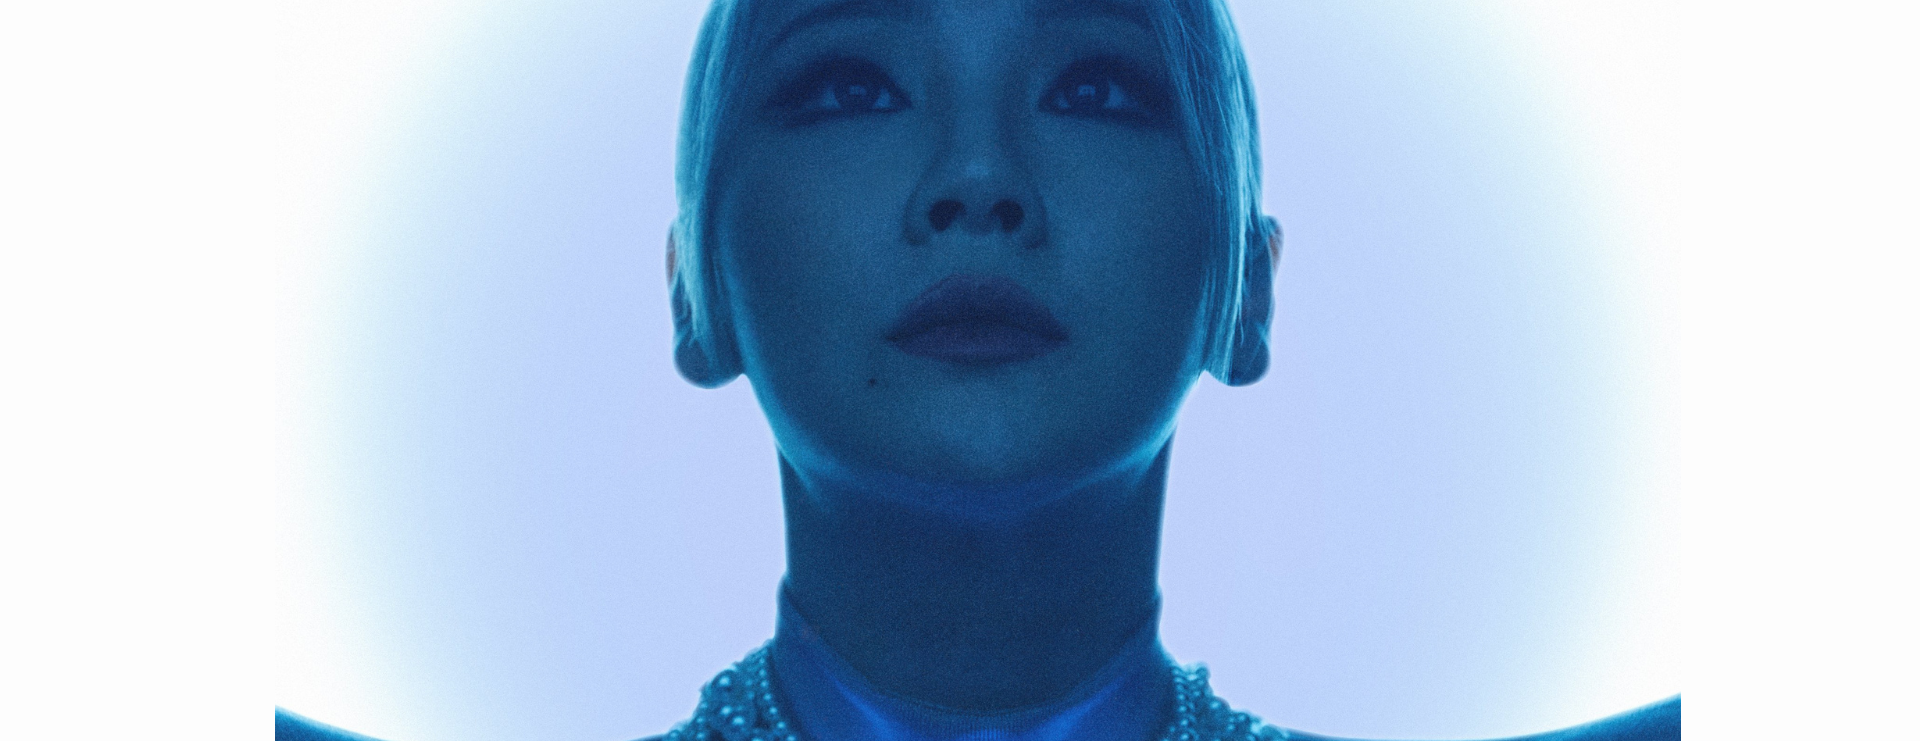 CL reveals details for upcoming single 'SPICY,' new album, 'ALPHA'